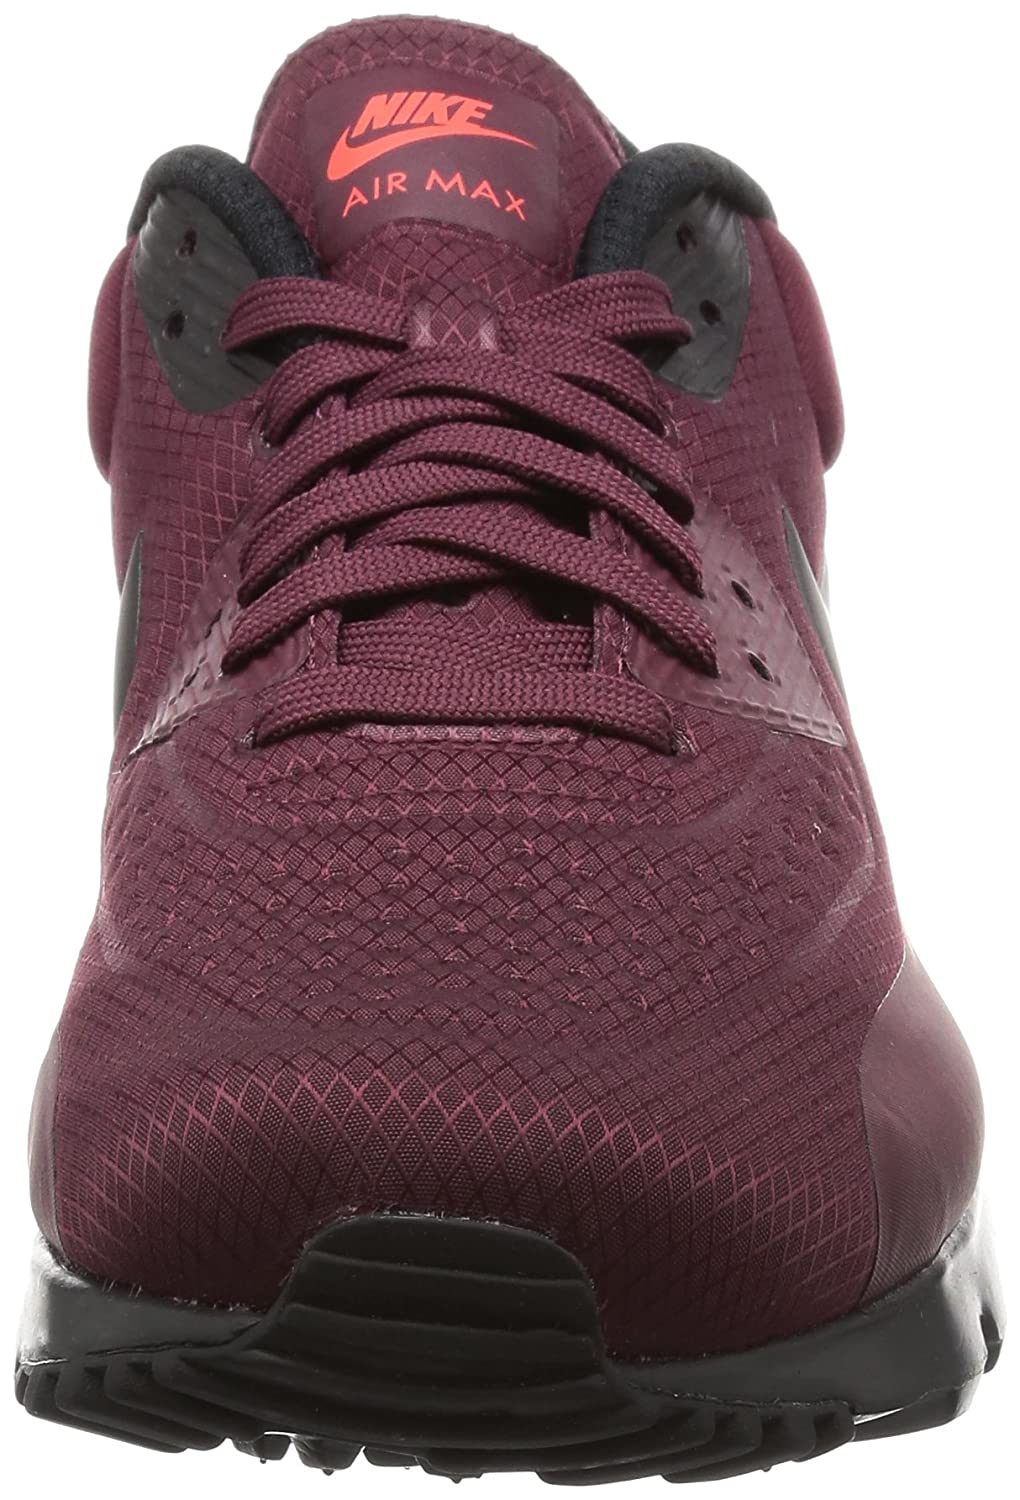 37233acf23e Nike Air Max 90 Ultra SE Night Maroon black 9 US D(M)  Amazon.in  Shoes    Handbags